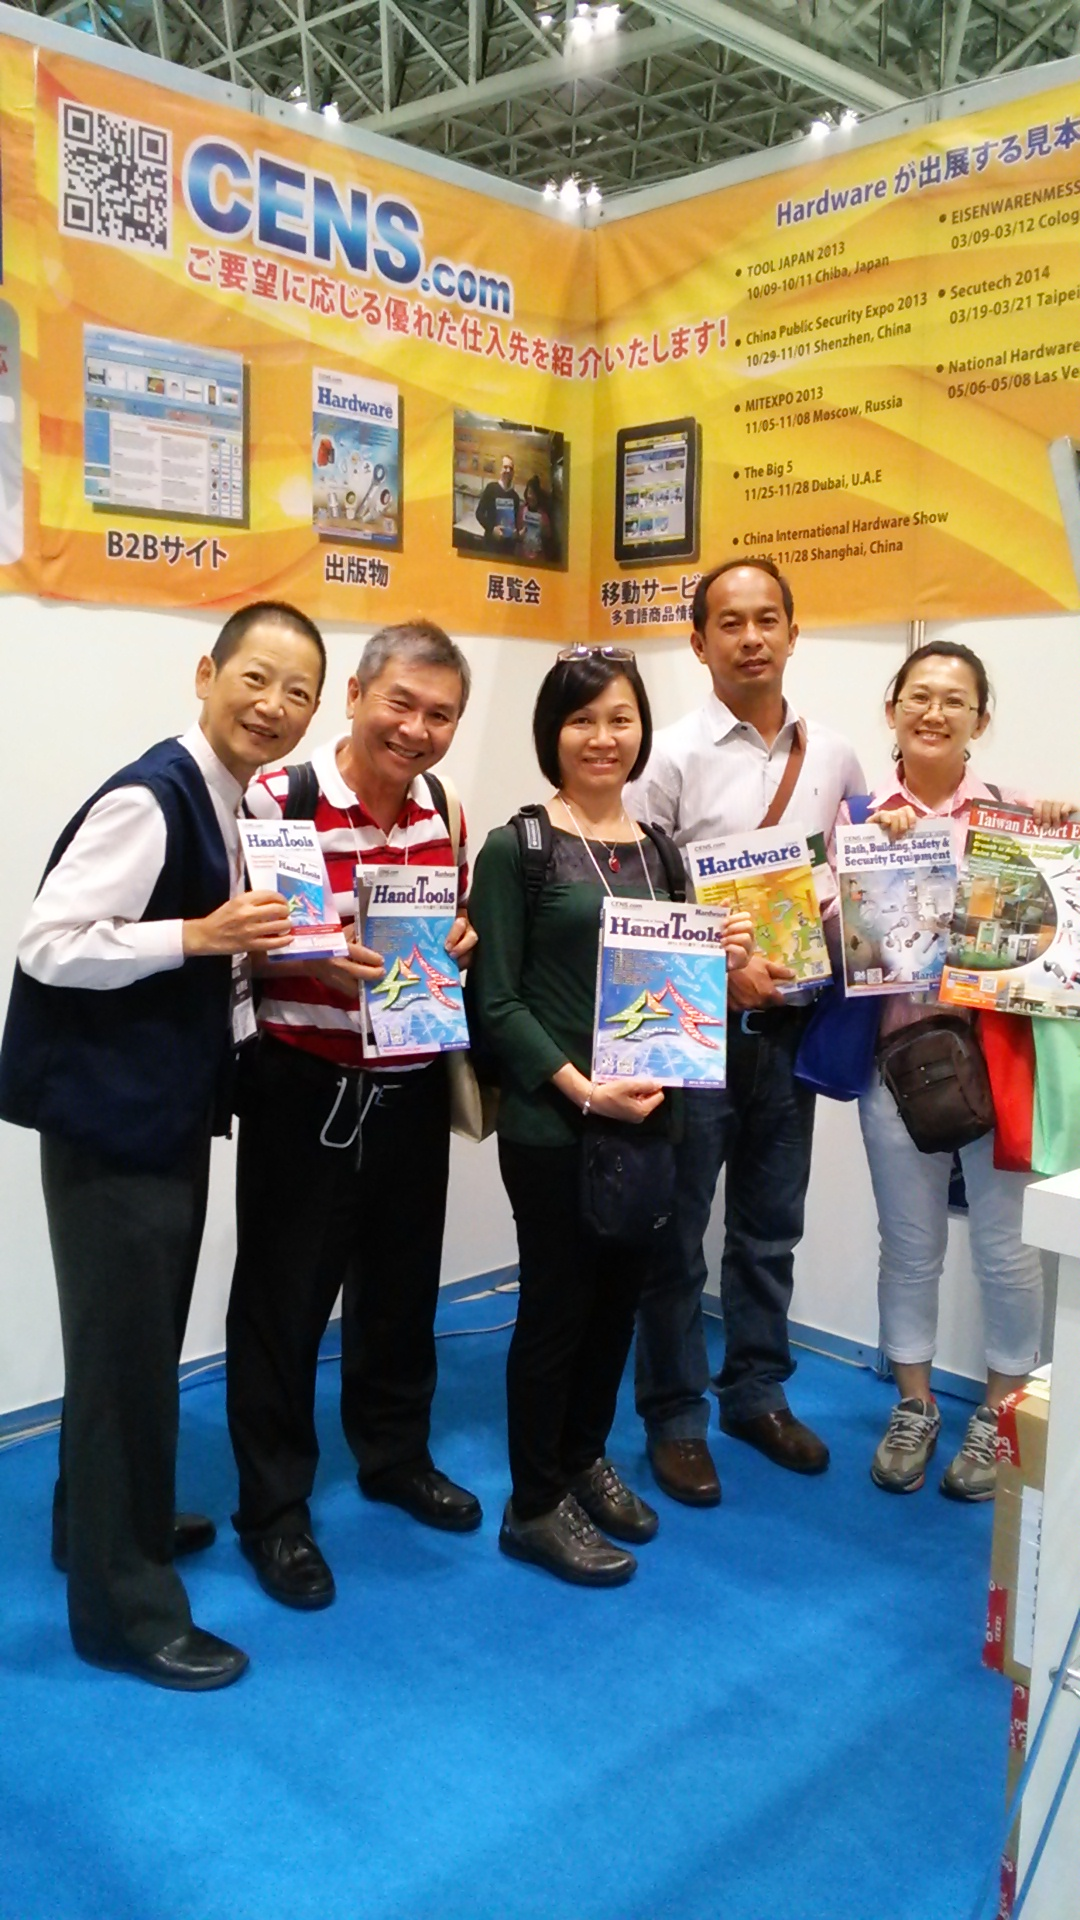 Buyers at Tool Japan 2013 find CENS buyer guides useful for  sourcing from Taiwan.